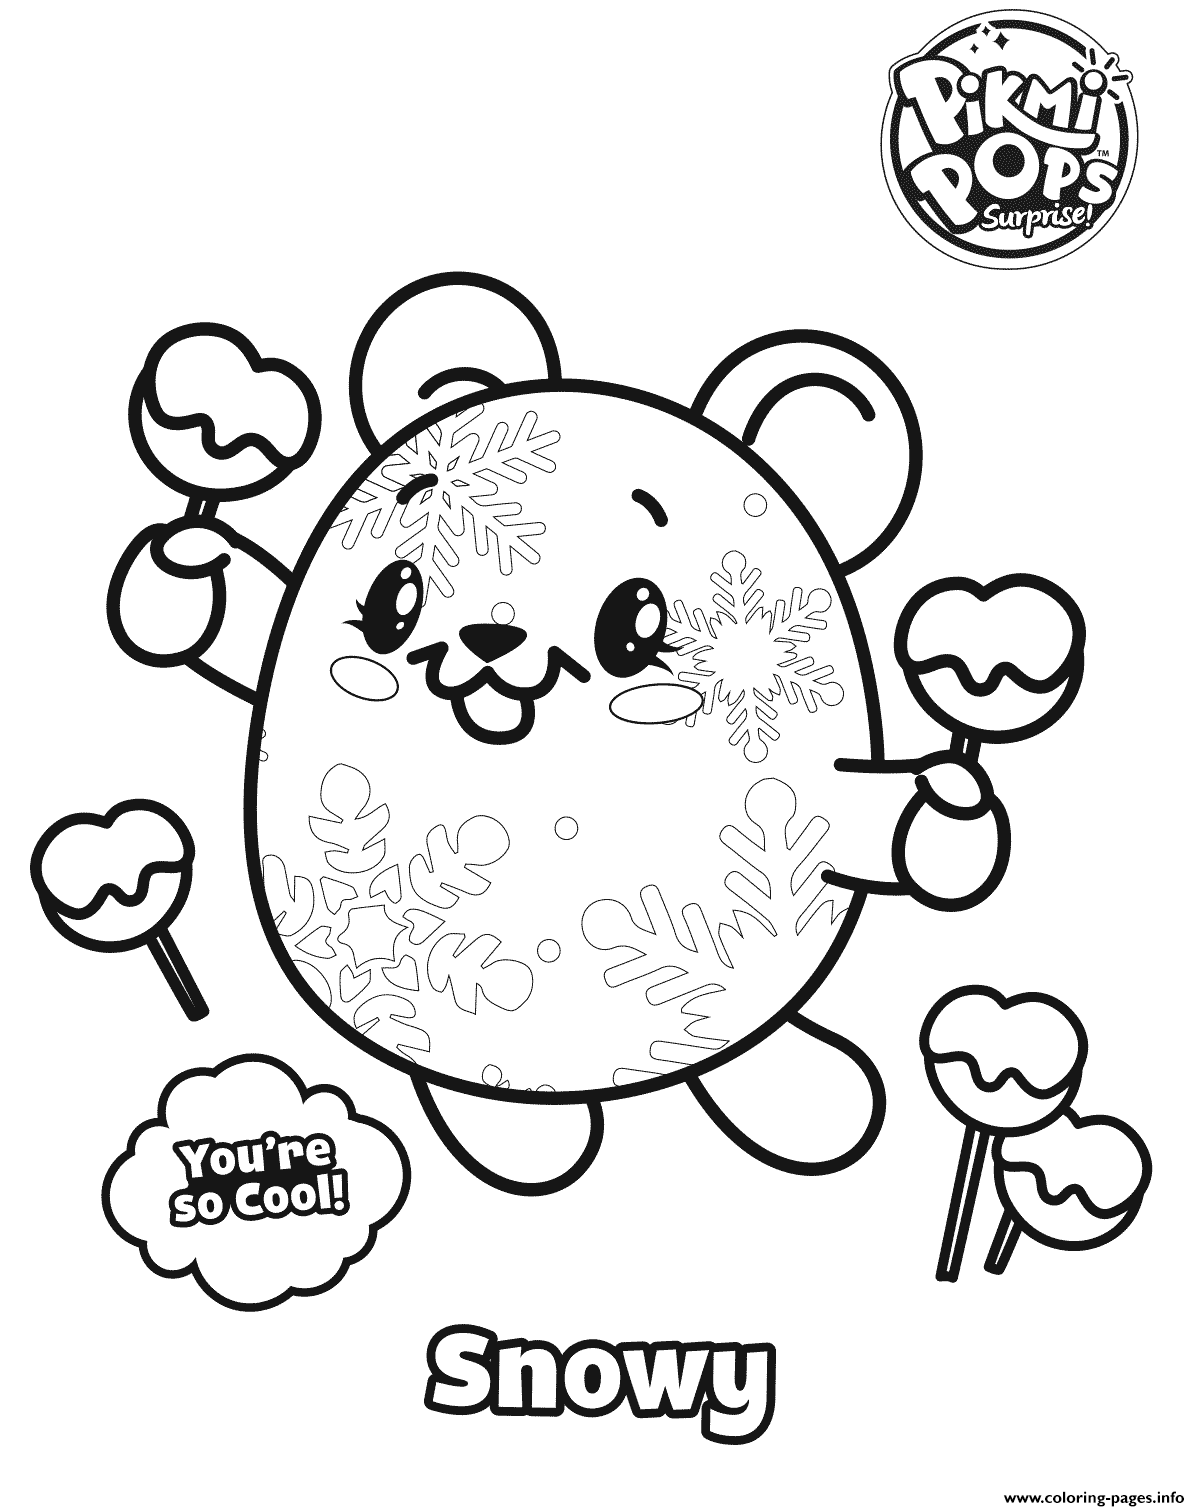 Pikmi Popss Coloring Pages Printable